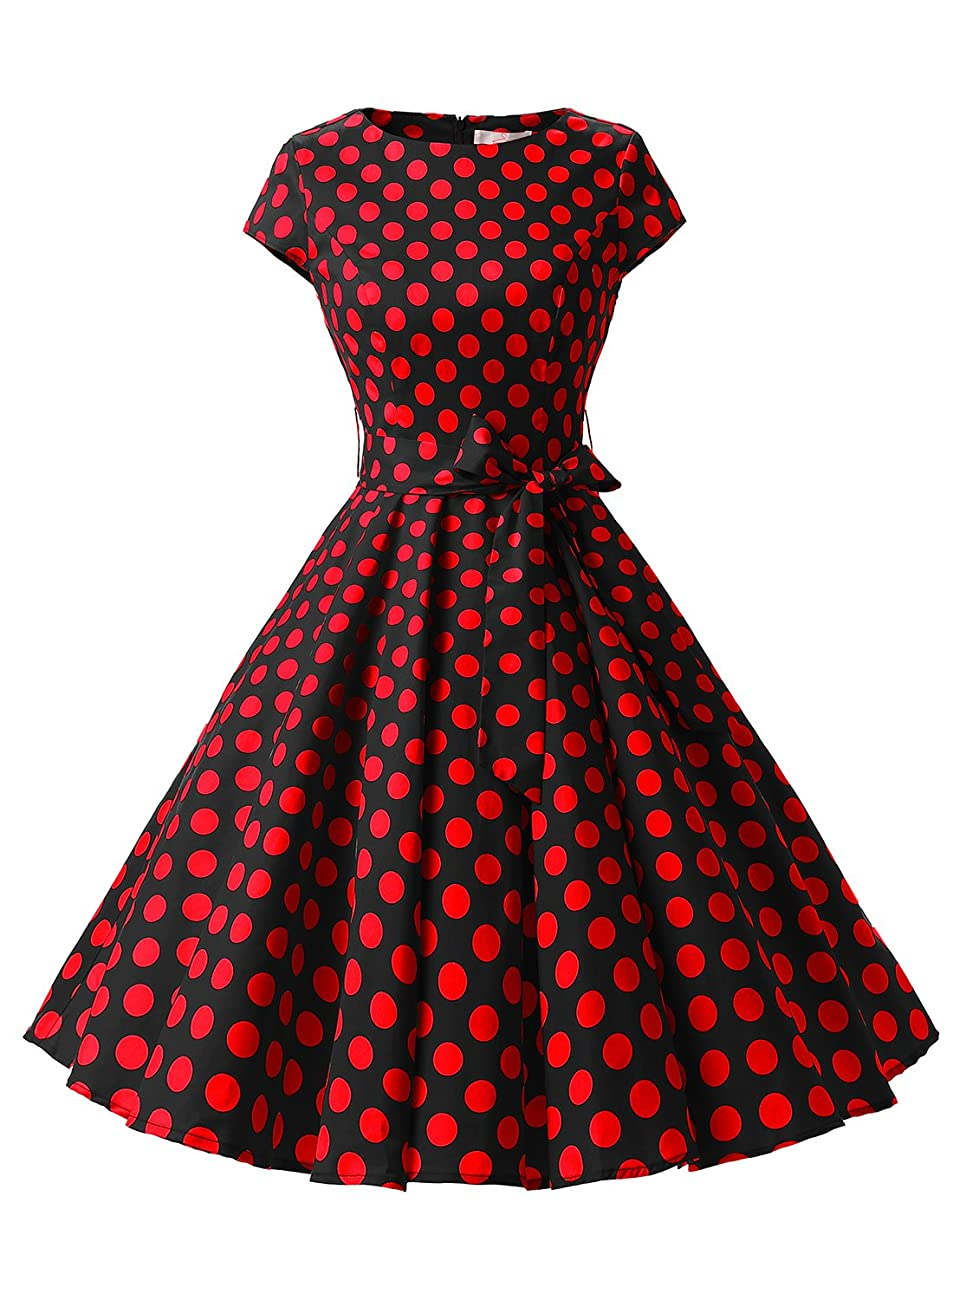 Dressystar Vintage 1950s Polka Dot and Solid Color Party Prom Dresses Rockabilly Cap Sleeves 0